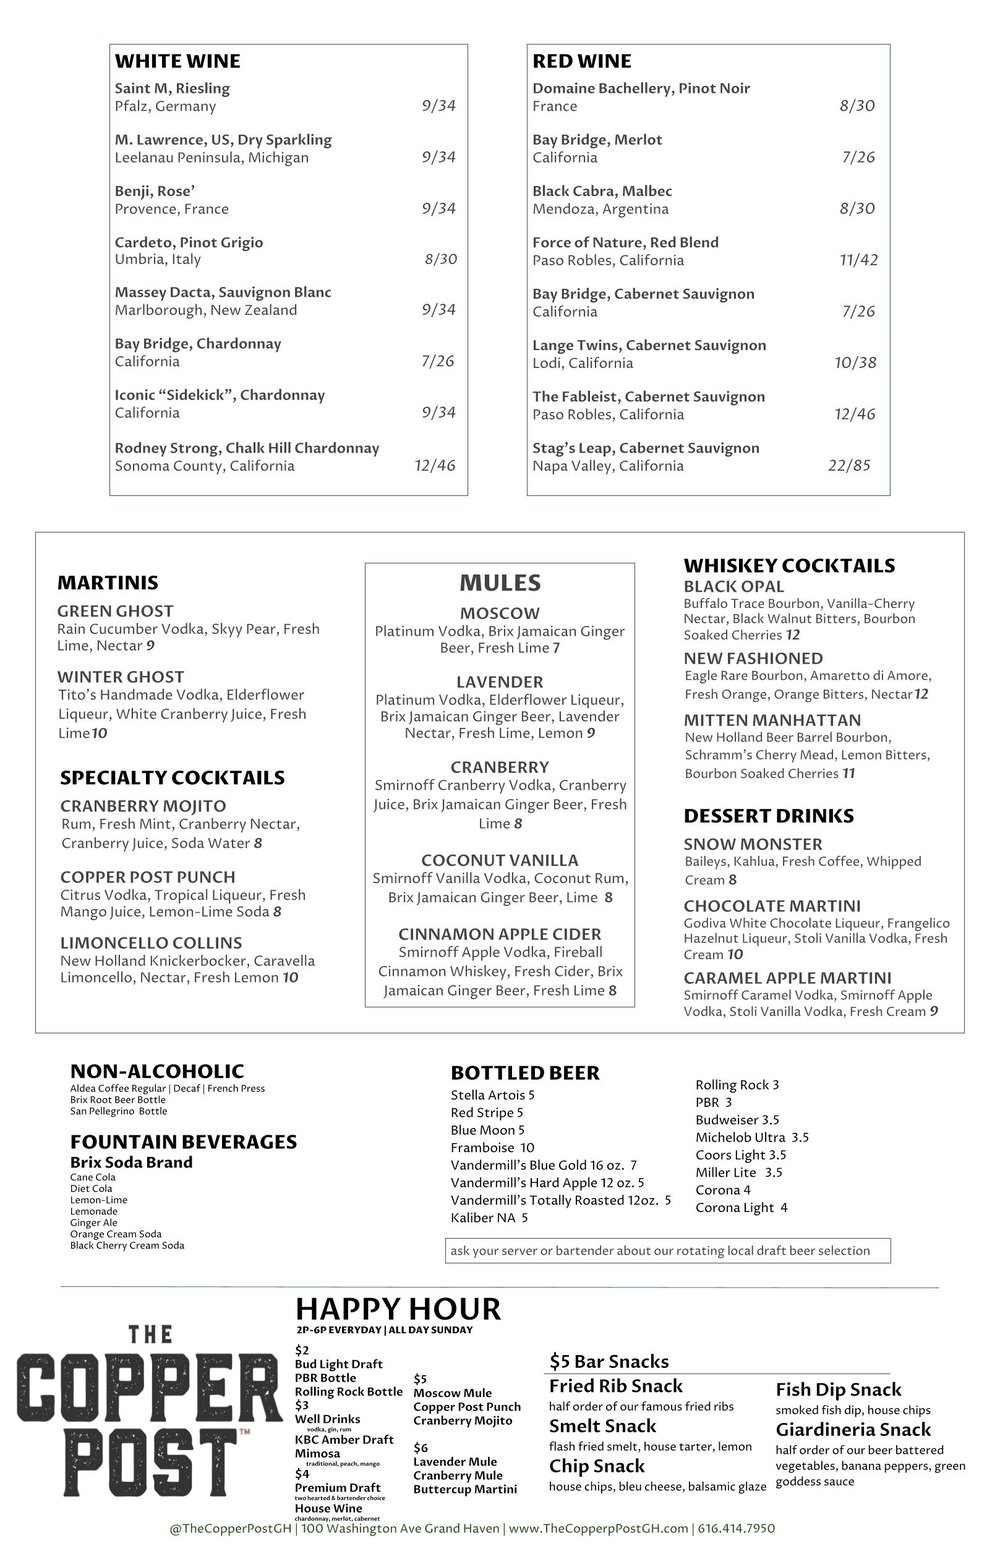 back Dinner menu design 2.0 (3).jpg